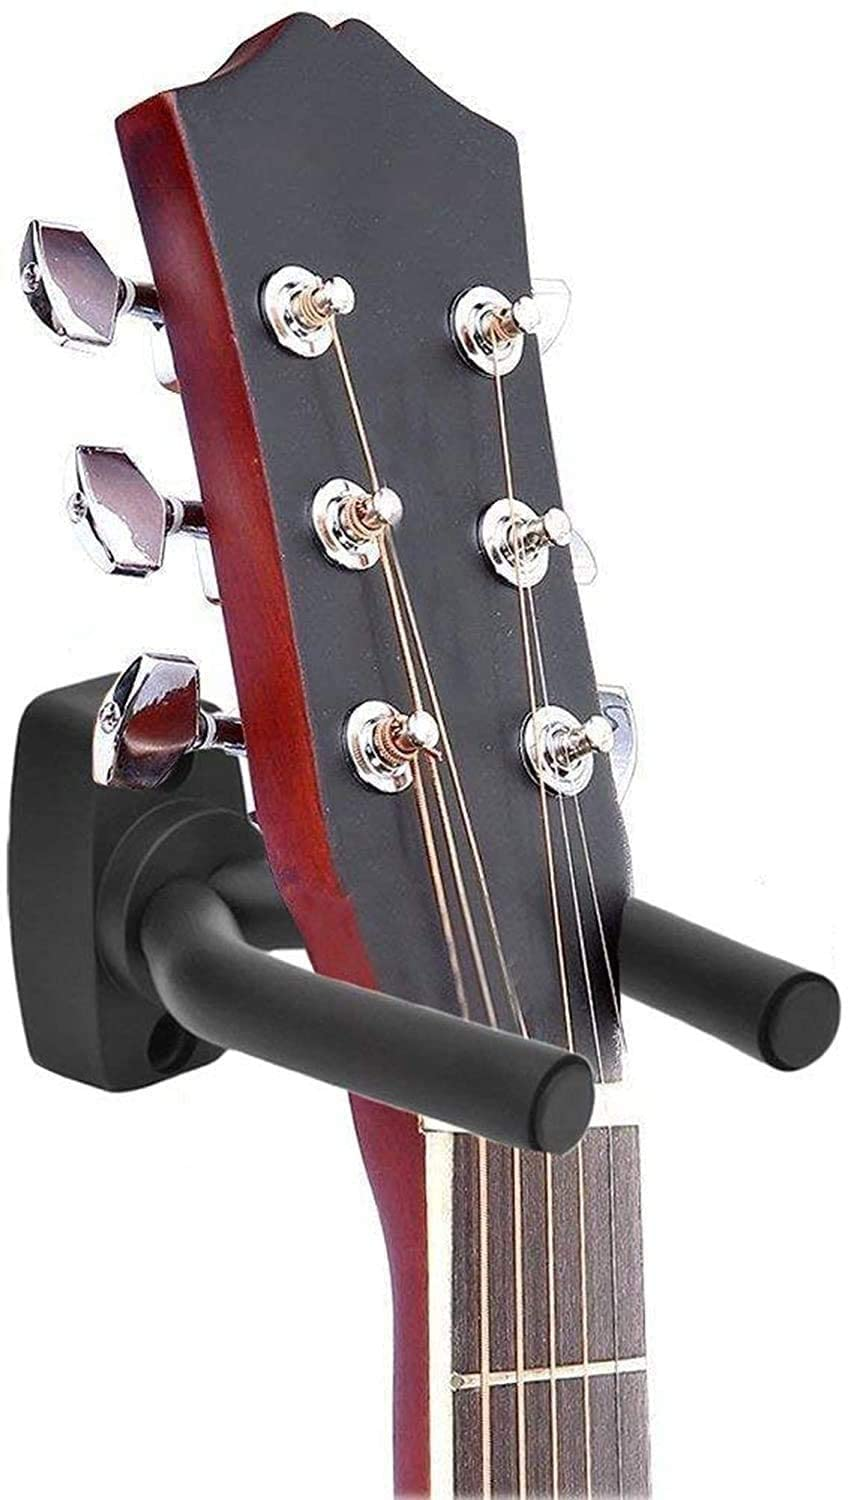 DECOMIL Guitar Holders Hooks Stands Hangers Wall Mount Display with Screws Fits All Size Guitars Bass Mandolin Banjo Ukulele (10 PCS)